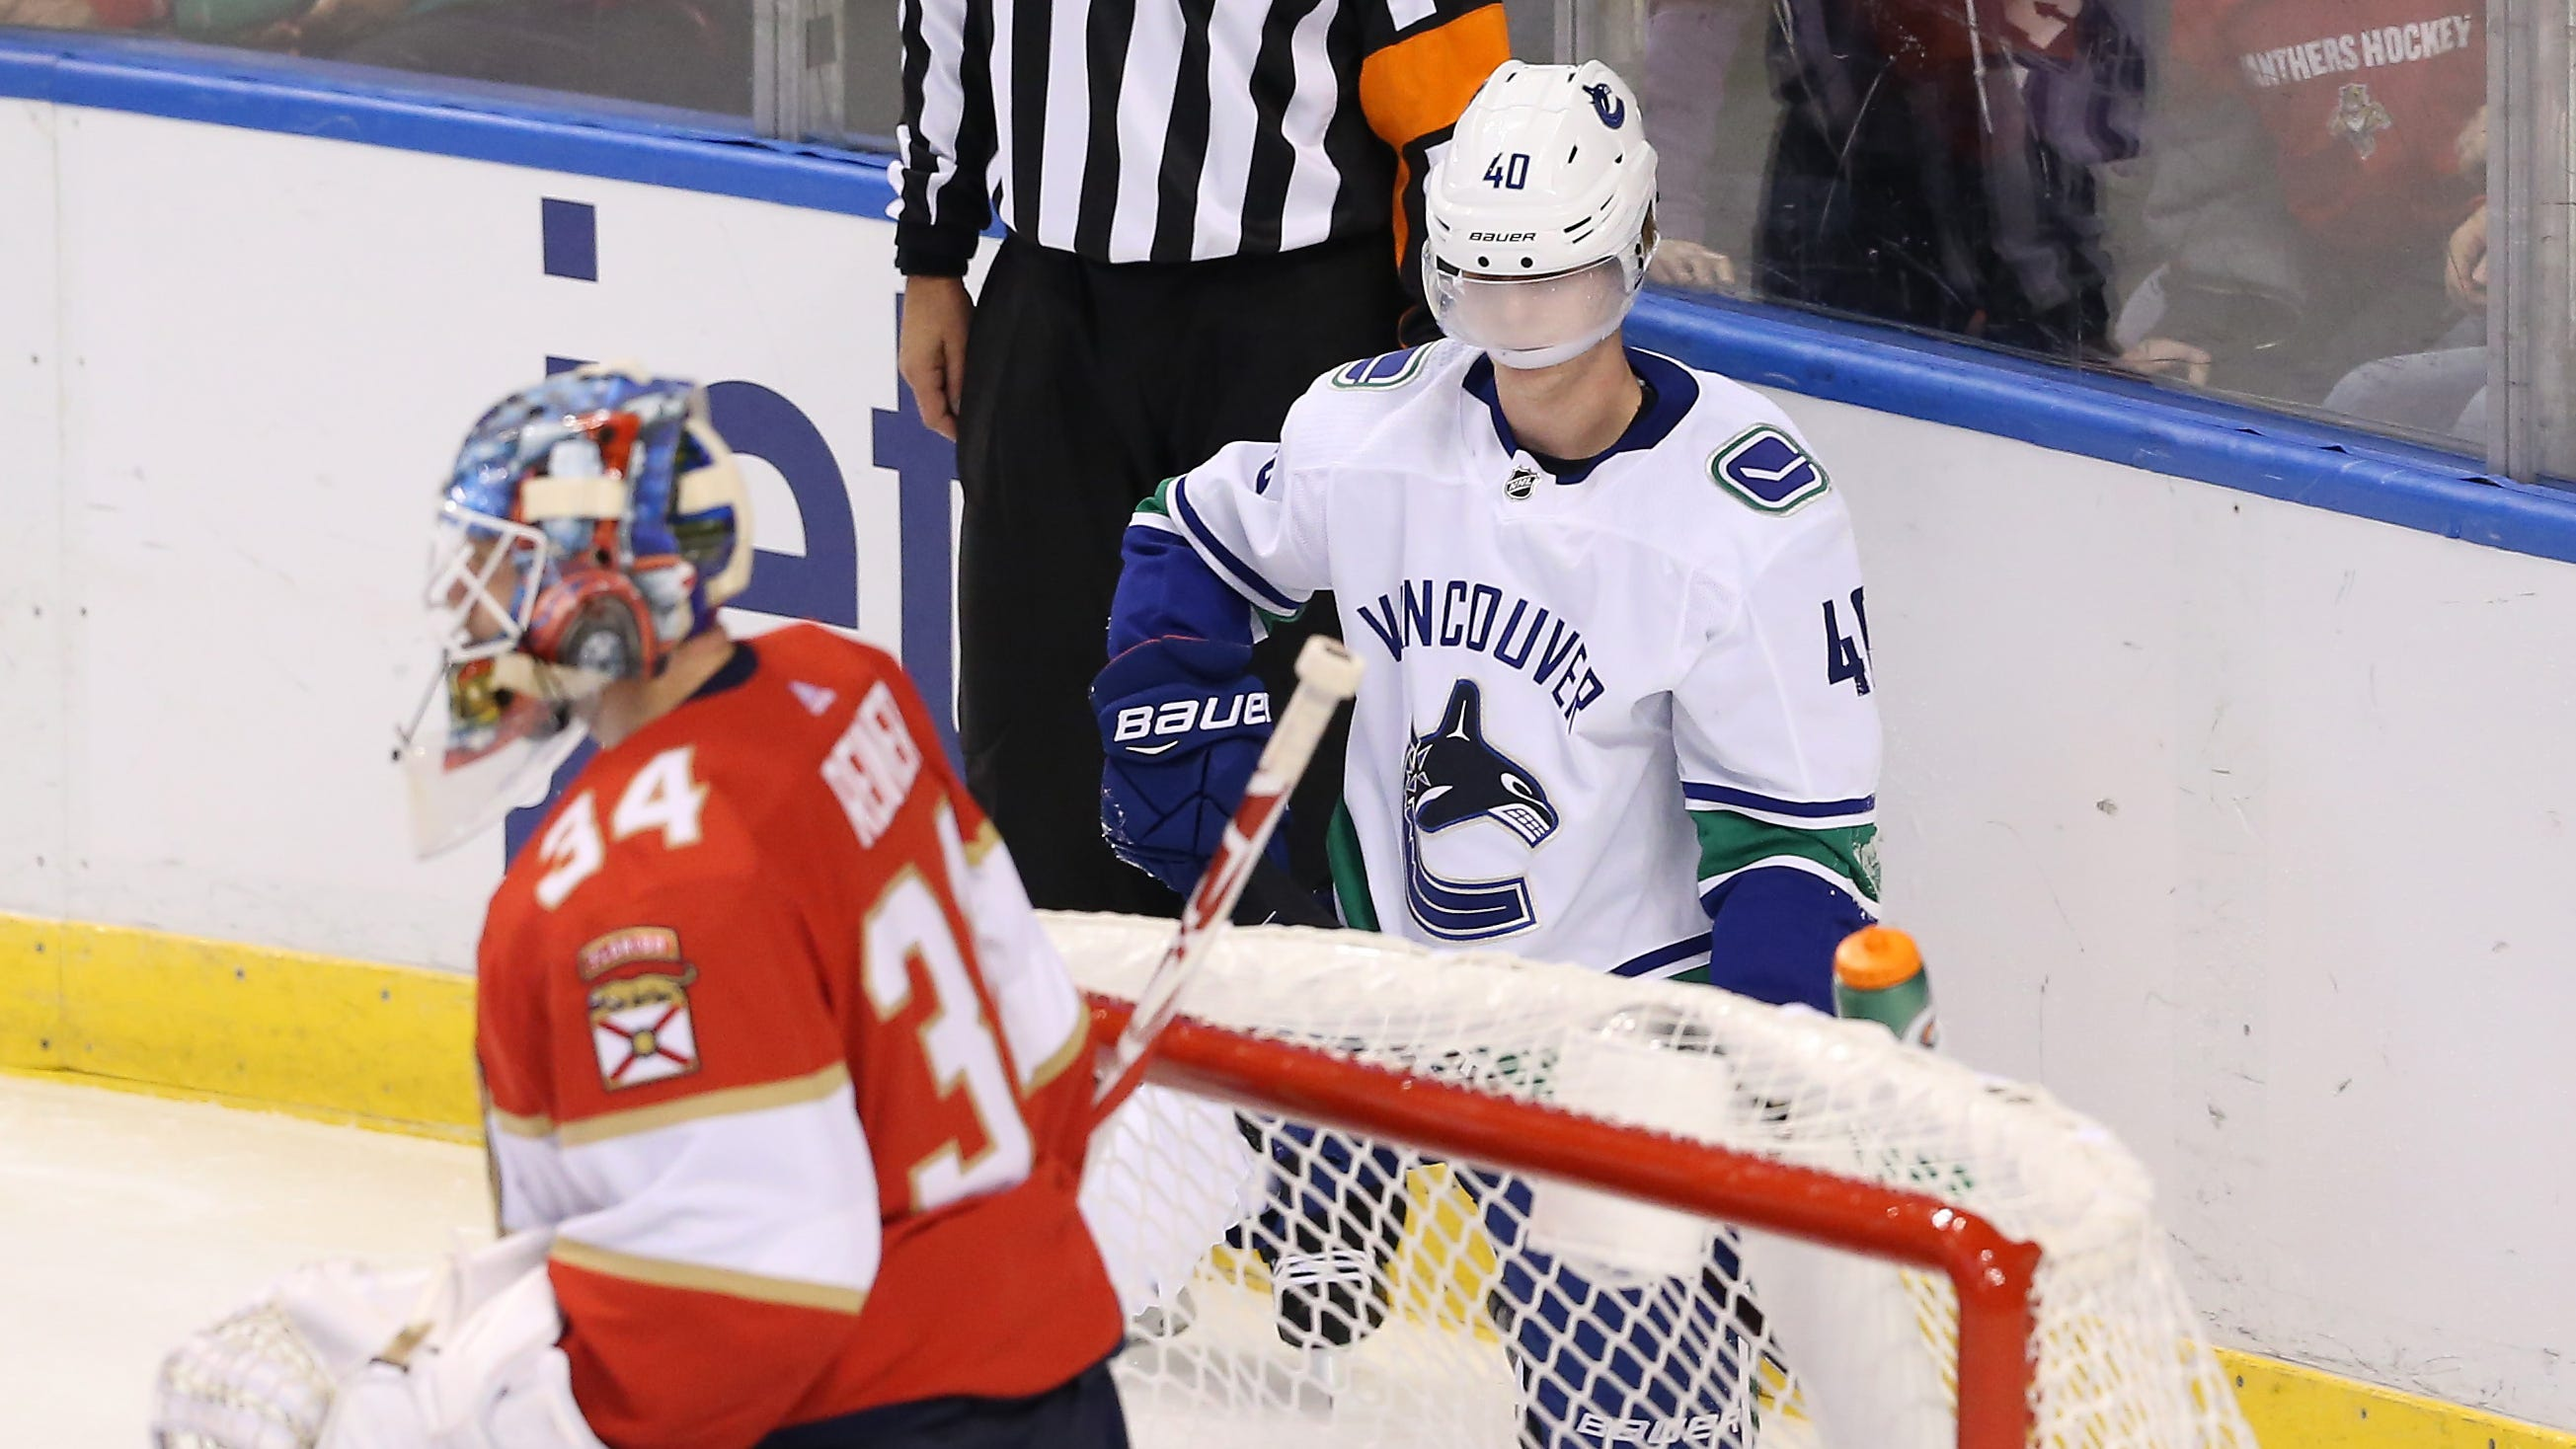 726f4e13-f9e1-43be-98ee-98b04a19a376-usp_nhl-_vancouver_canucks_at_florida_panthers